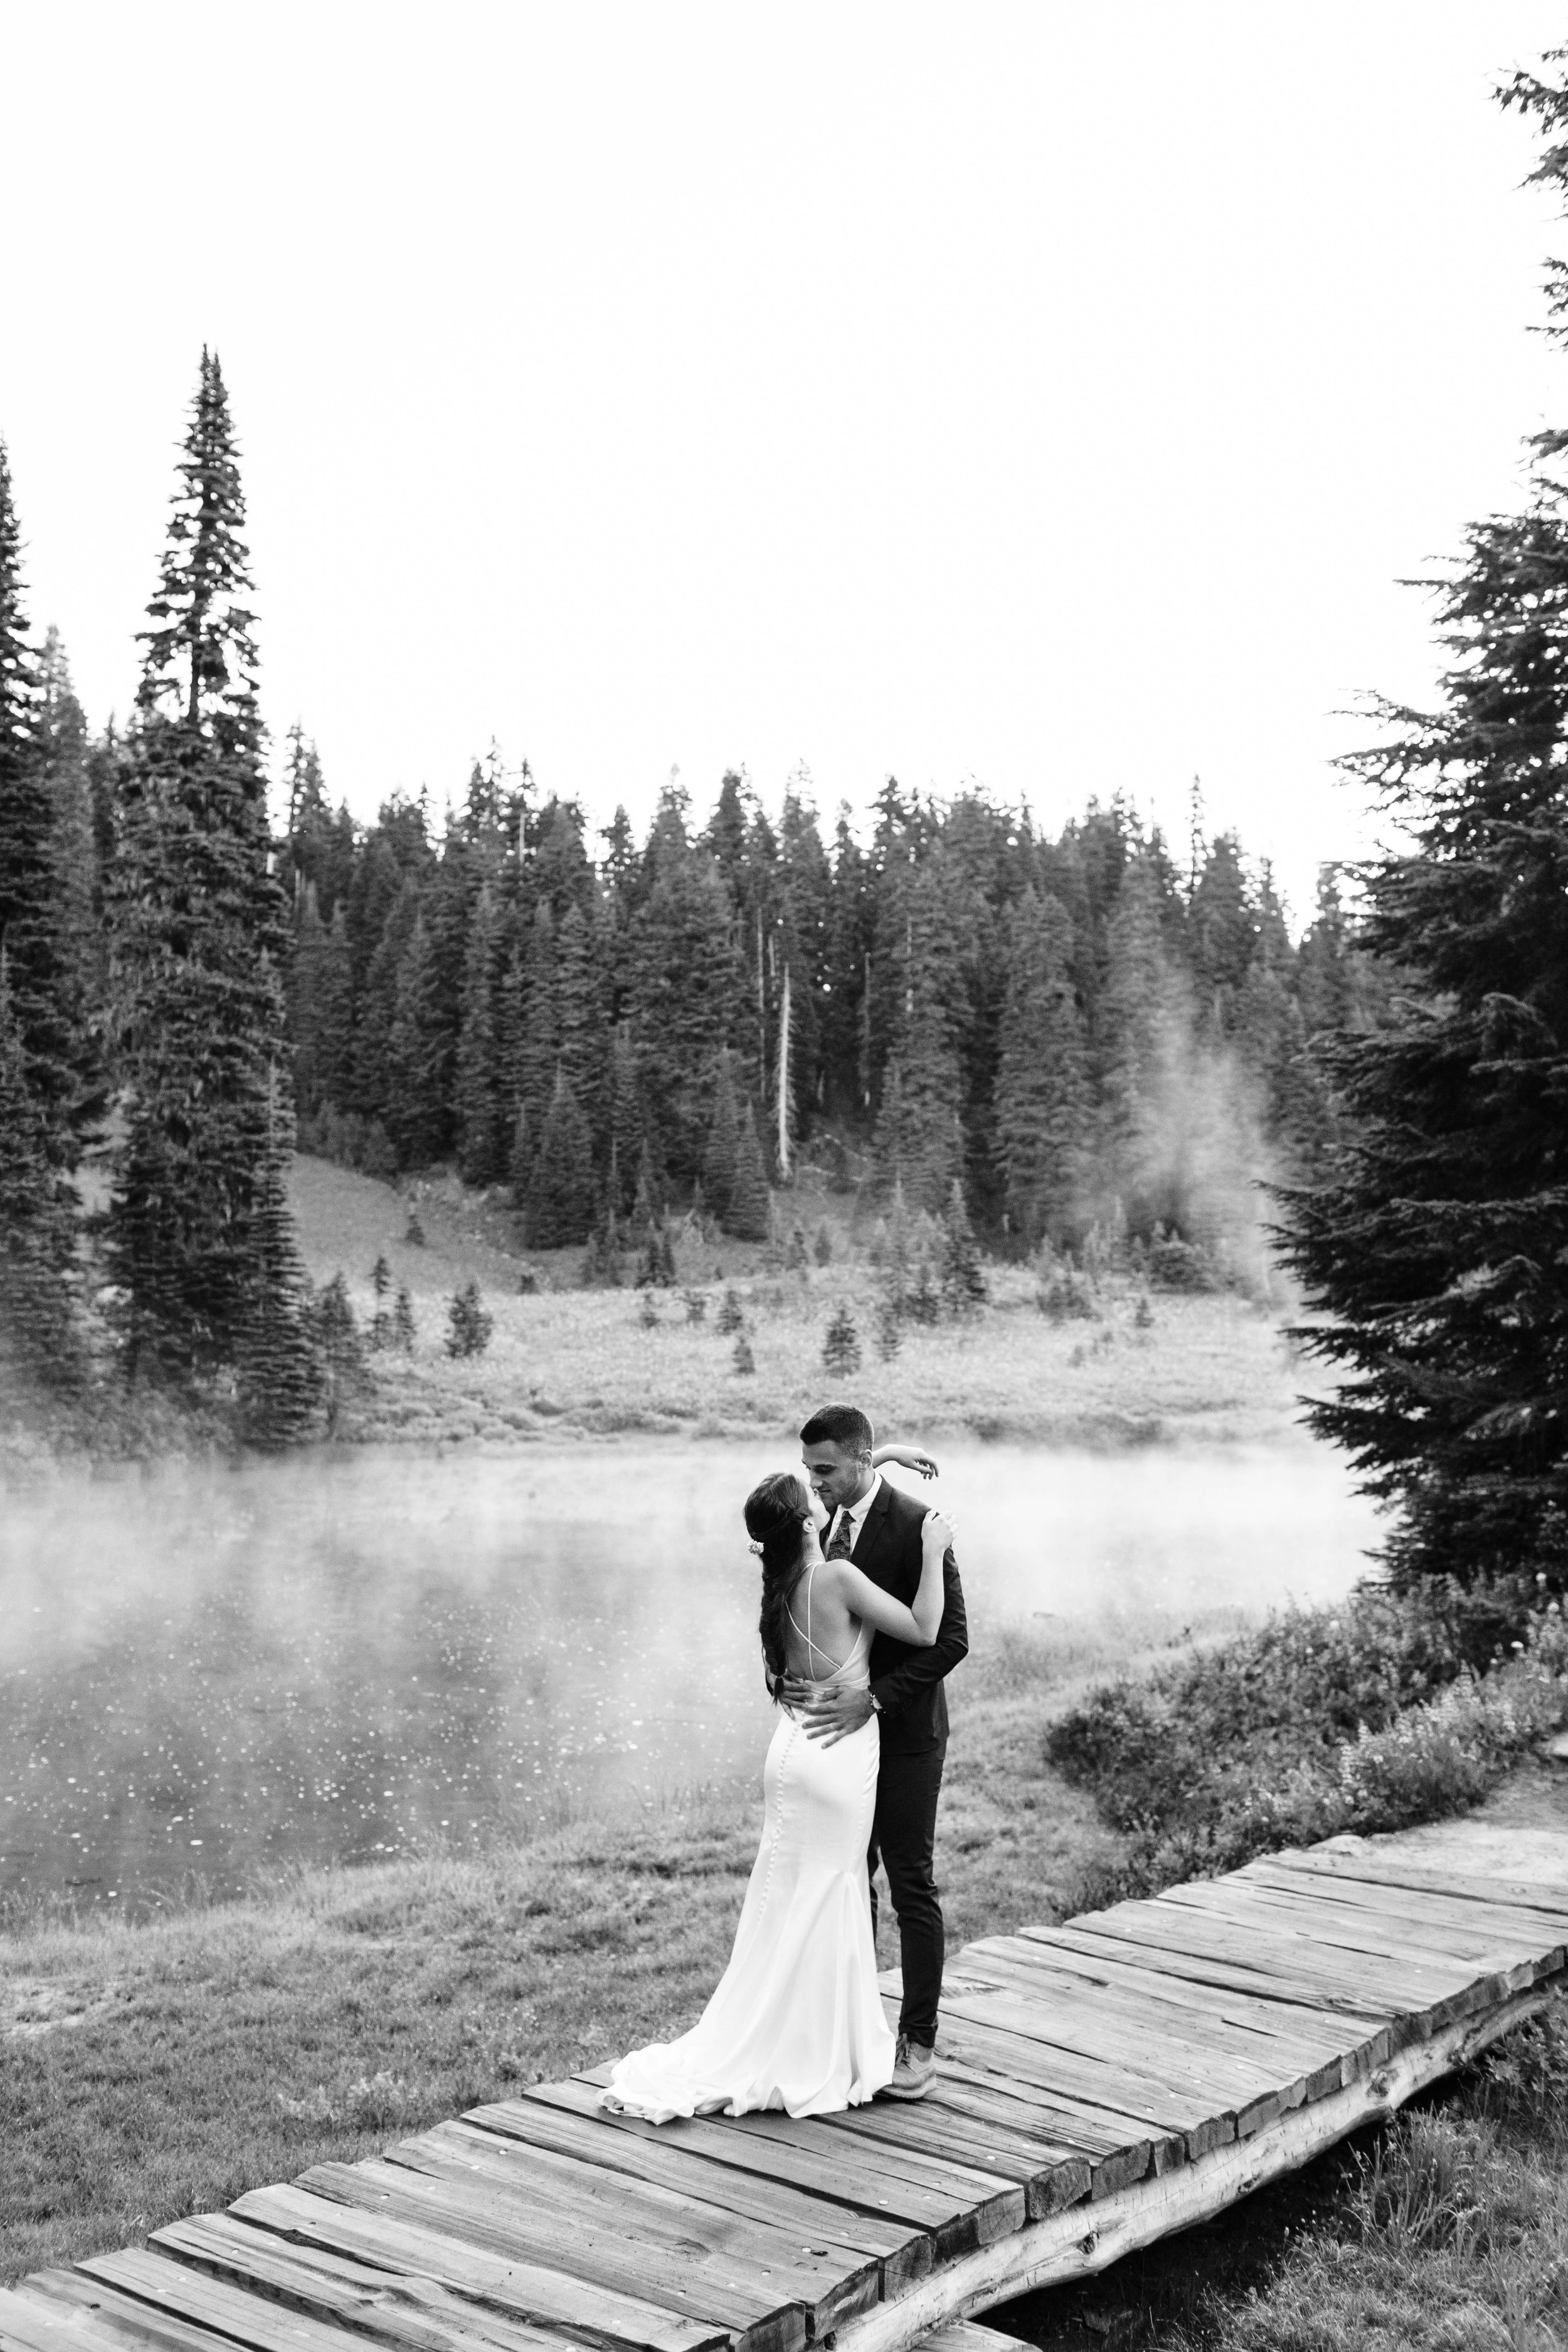 bride and groom's elopement first look in Mount Rainier | Washington state national park adventure elopement photographers